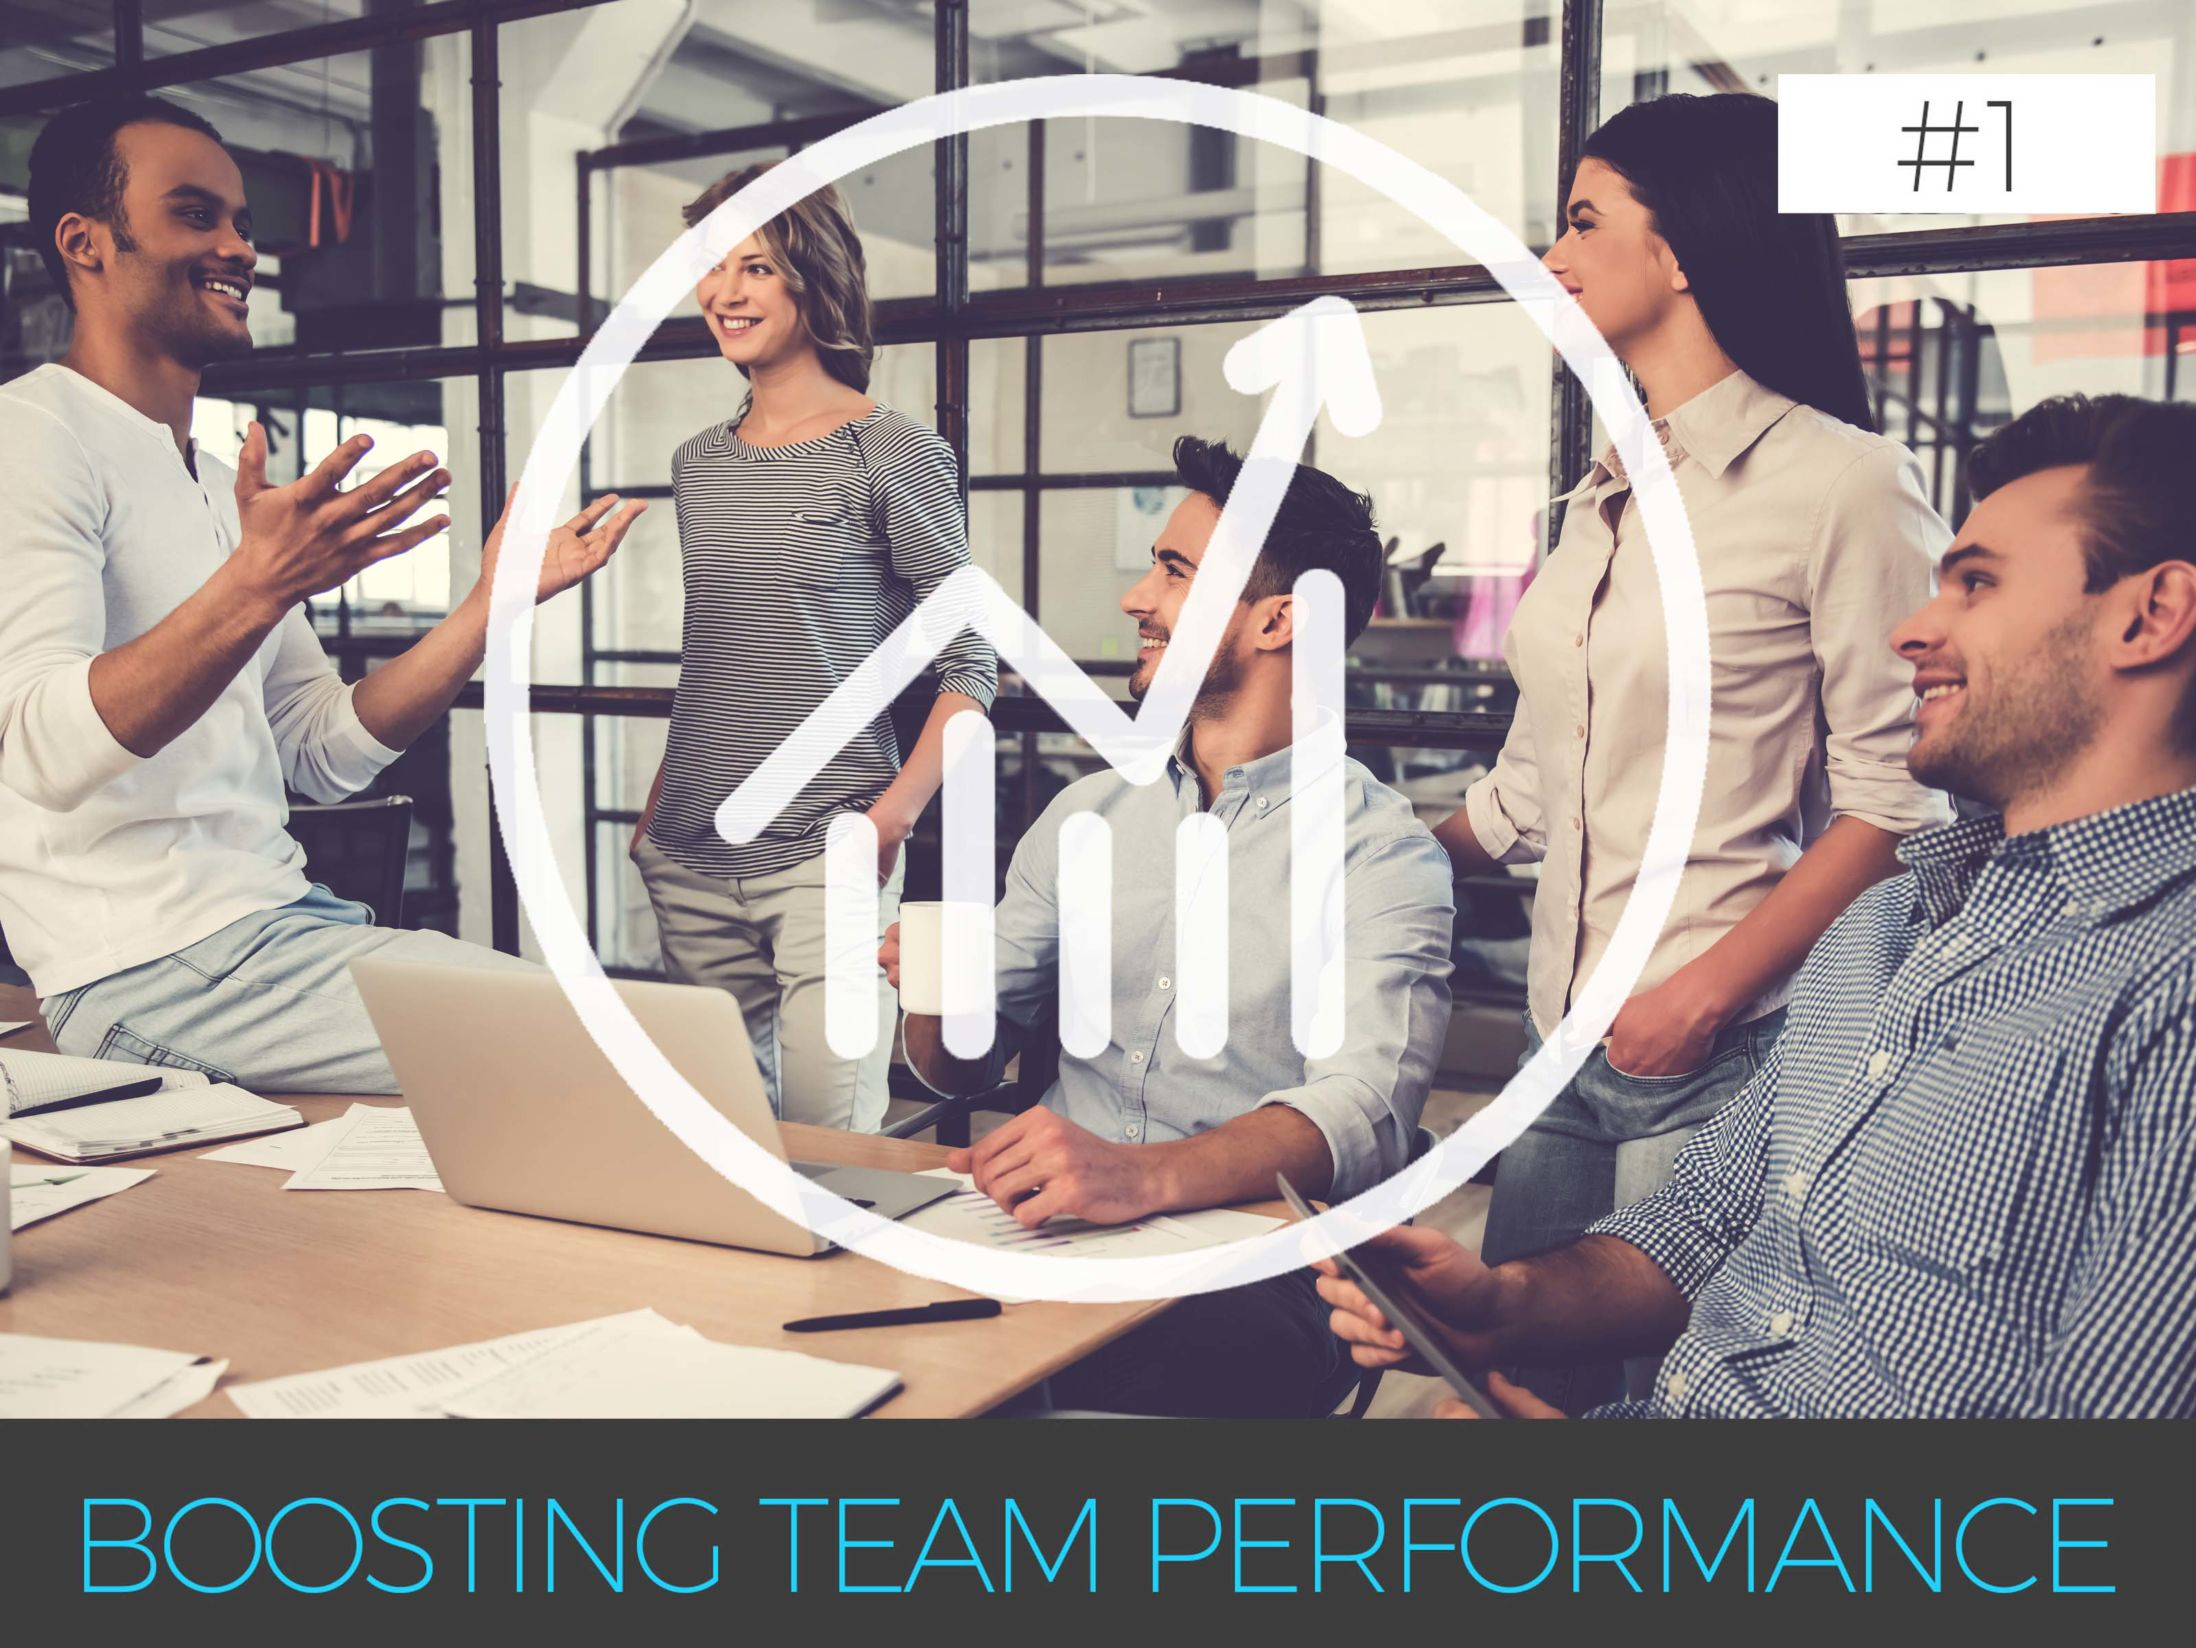 Can Team Building Increase Team Performance?